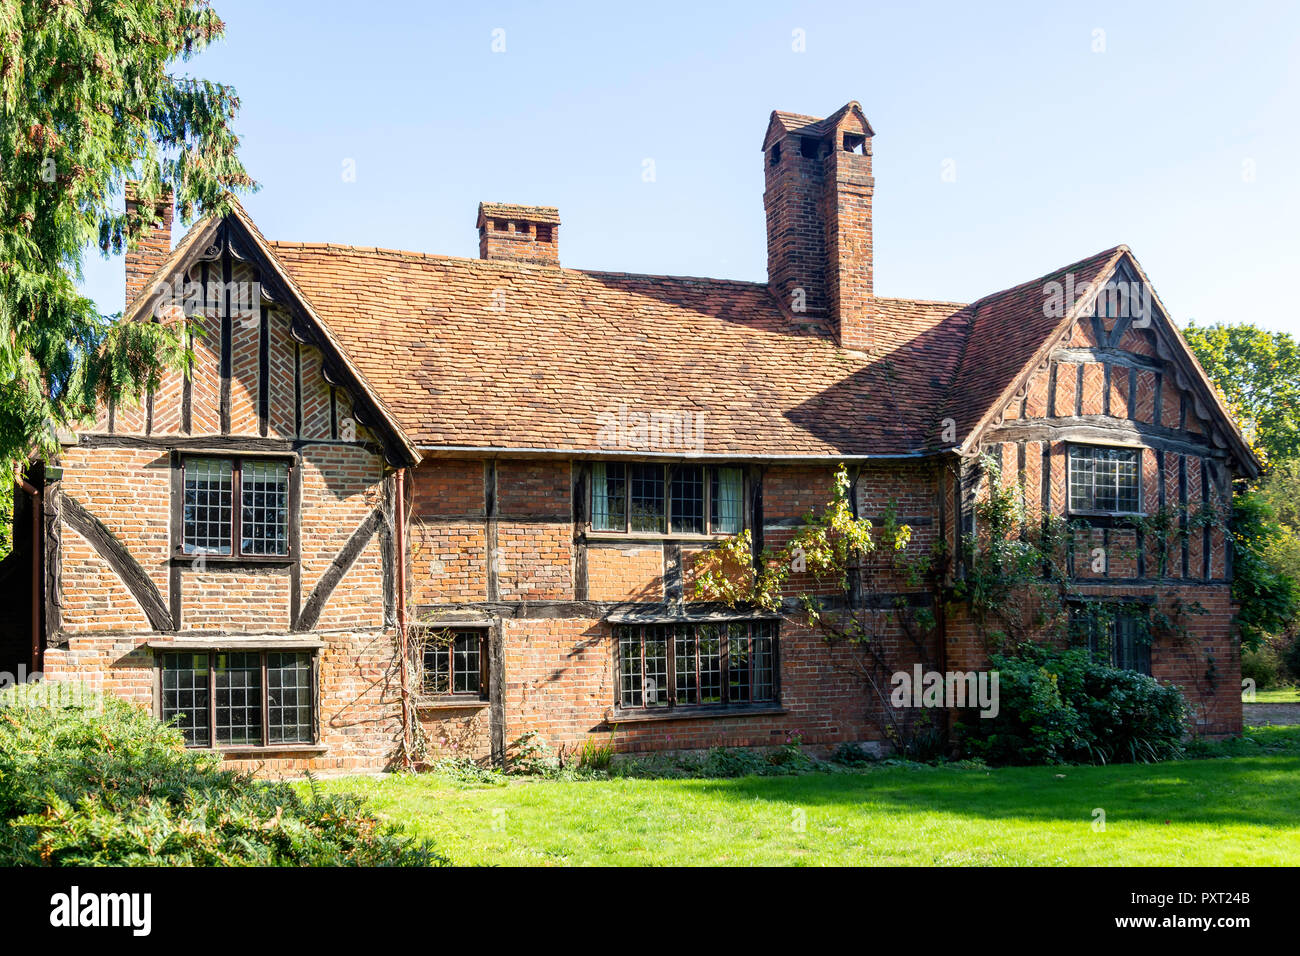 Period timber-framed house, The Street, Waltham St Lawrence, Berkshire, England, United Kingdom - Stock Image